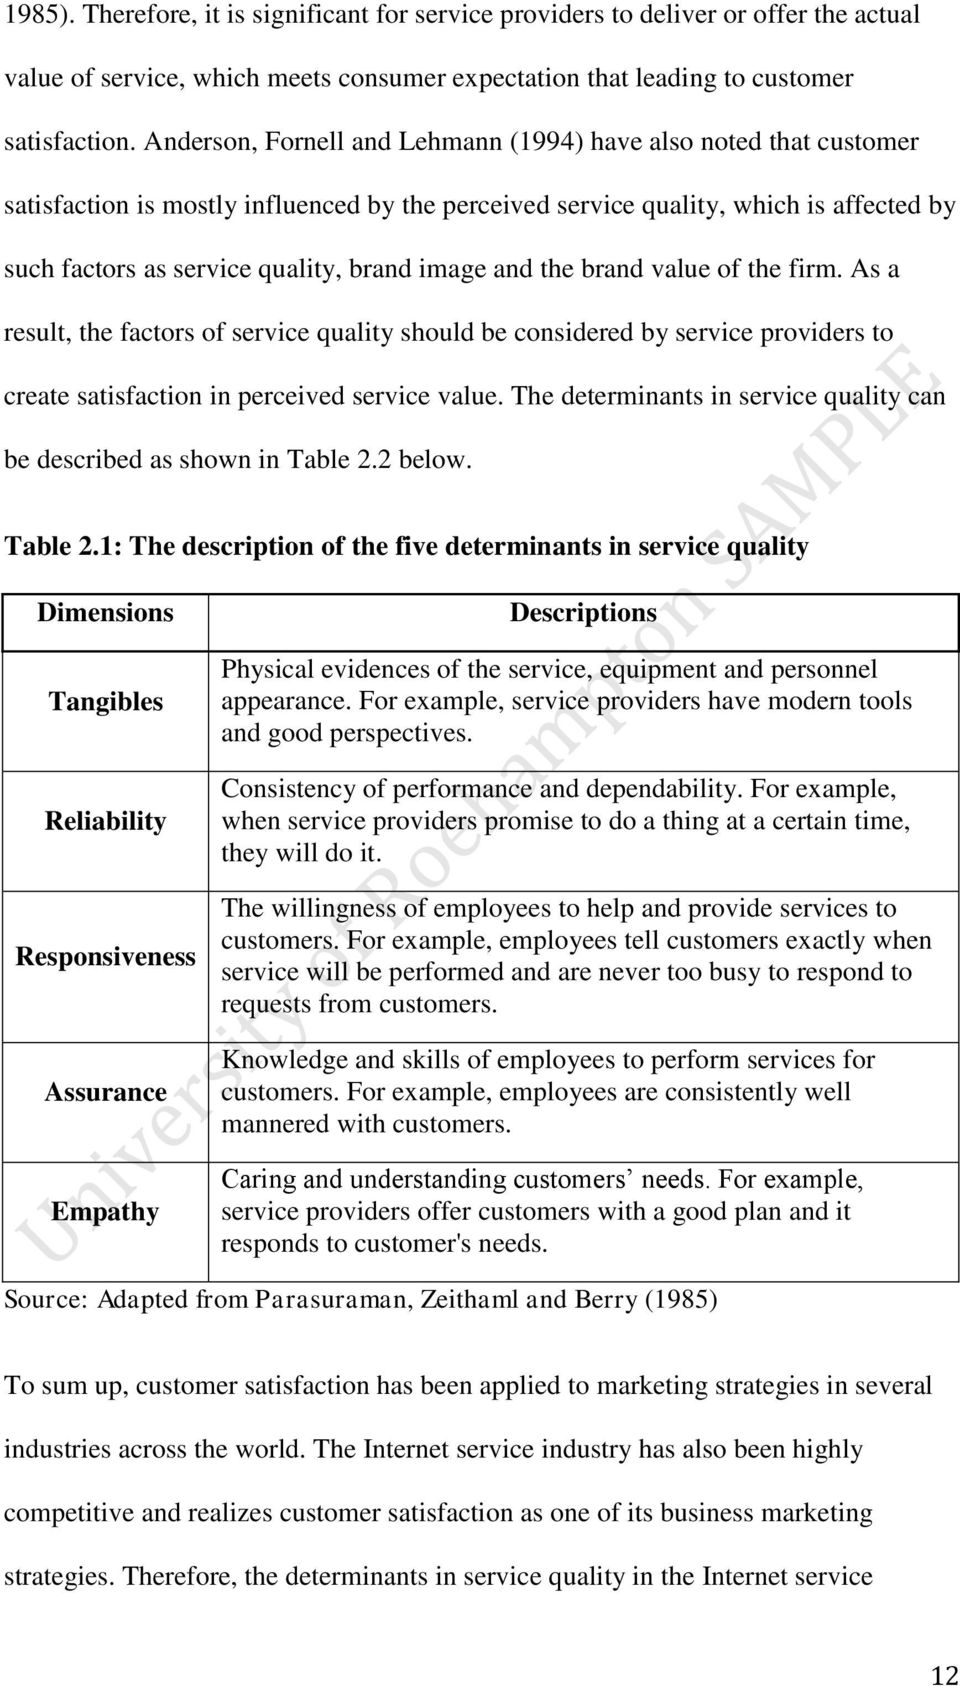 image and the brand value of the firm. As a result, the factors of service quality should be considered by service providers to create satisfaction in perceived service value.